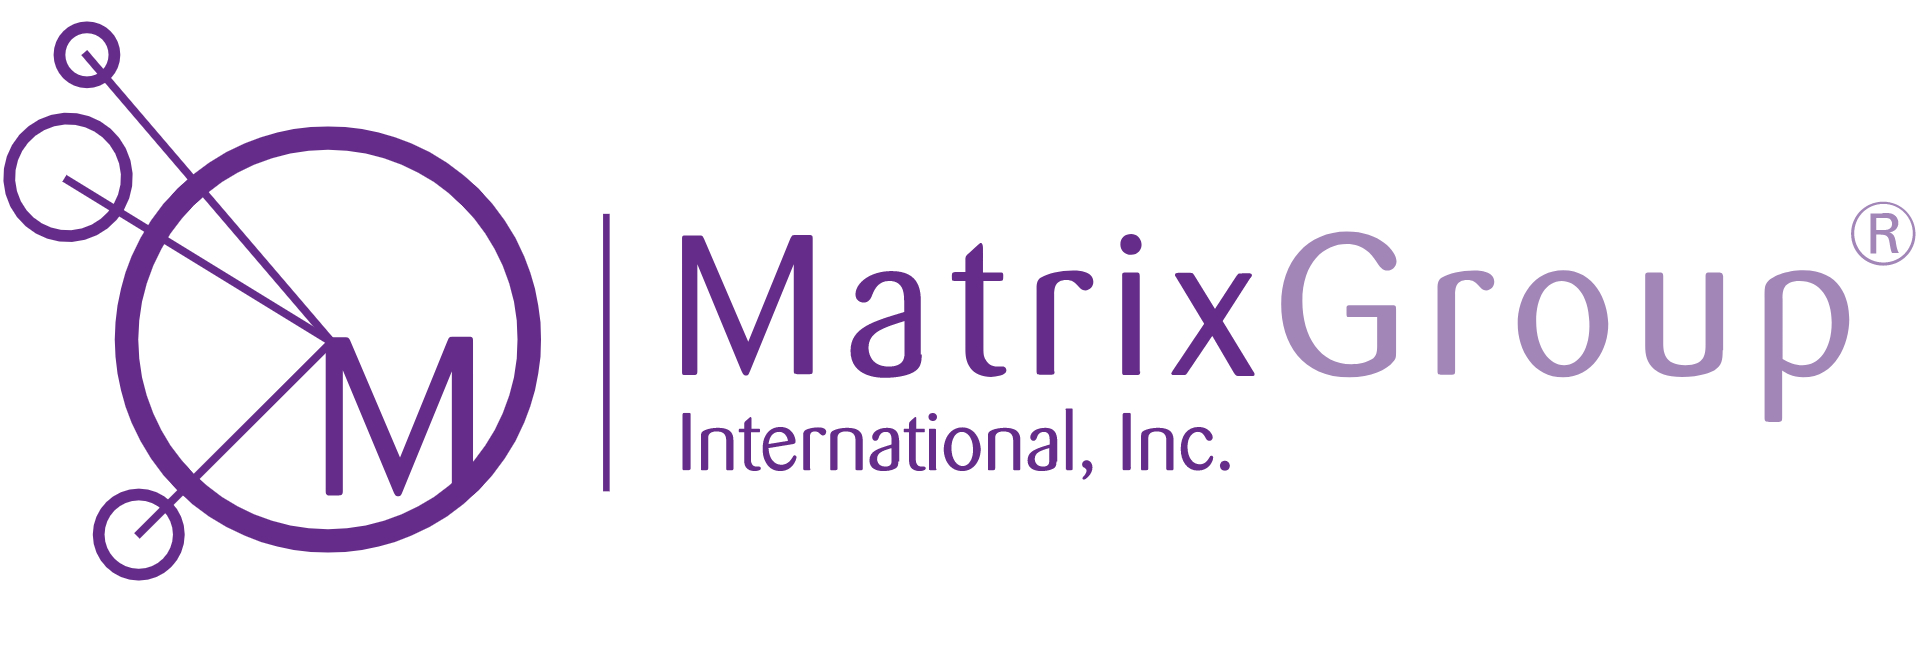 Matrix Group International